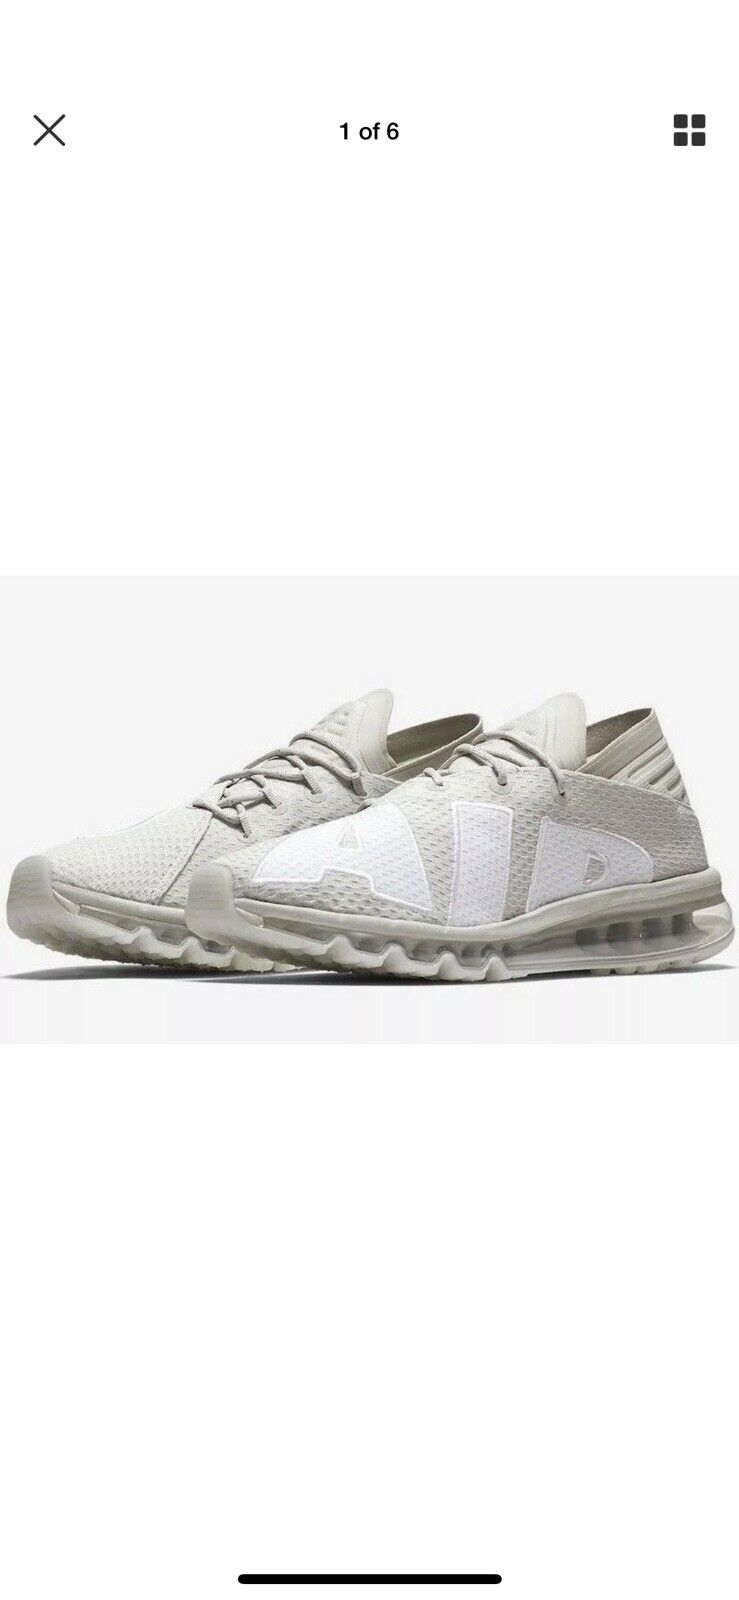 Nike Air Max Flair 942236-005 Running shoes Size 9.5 New With Box